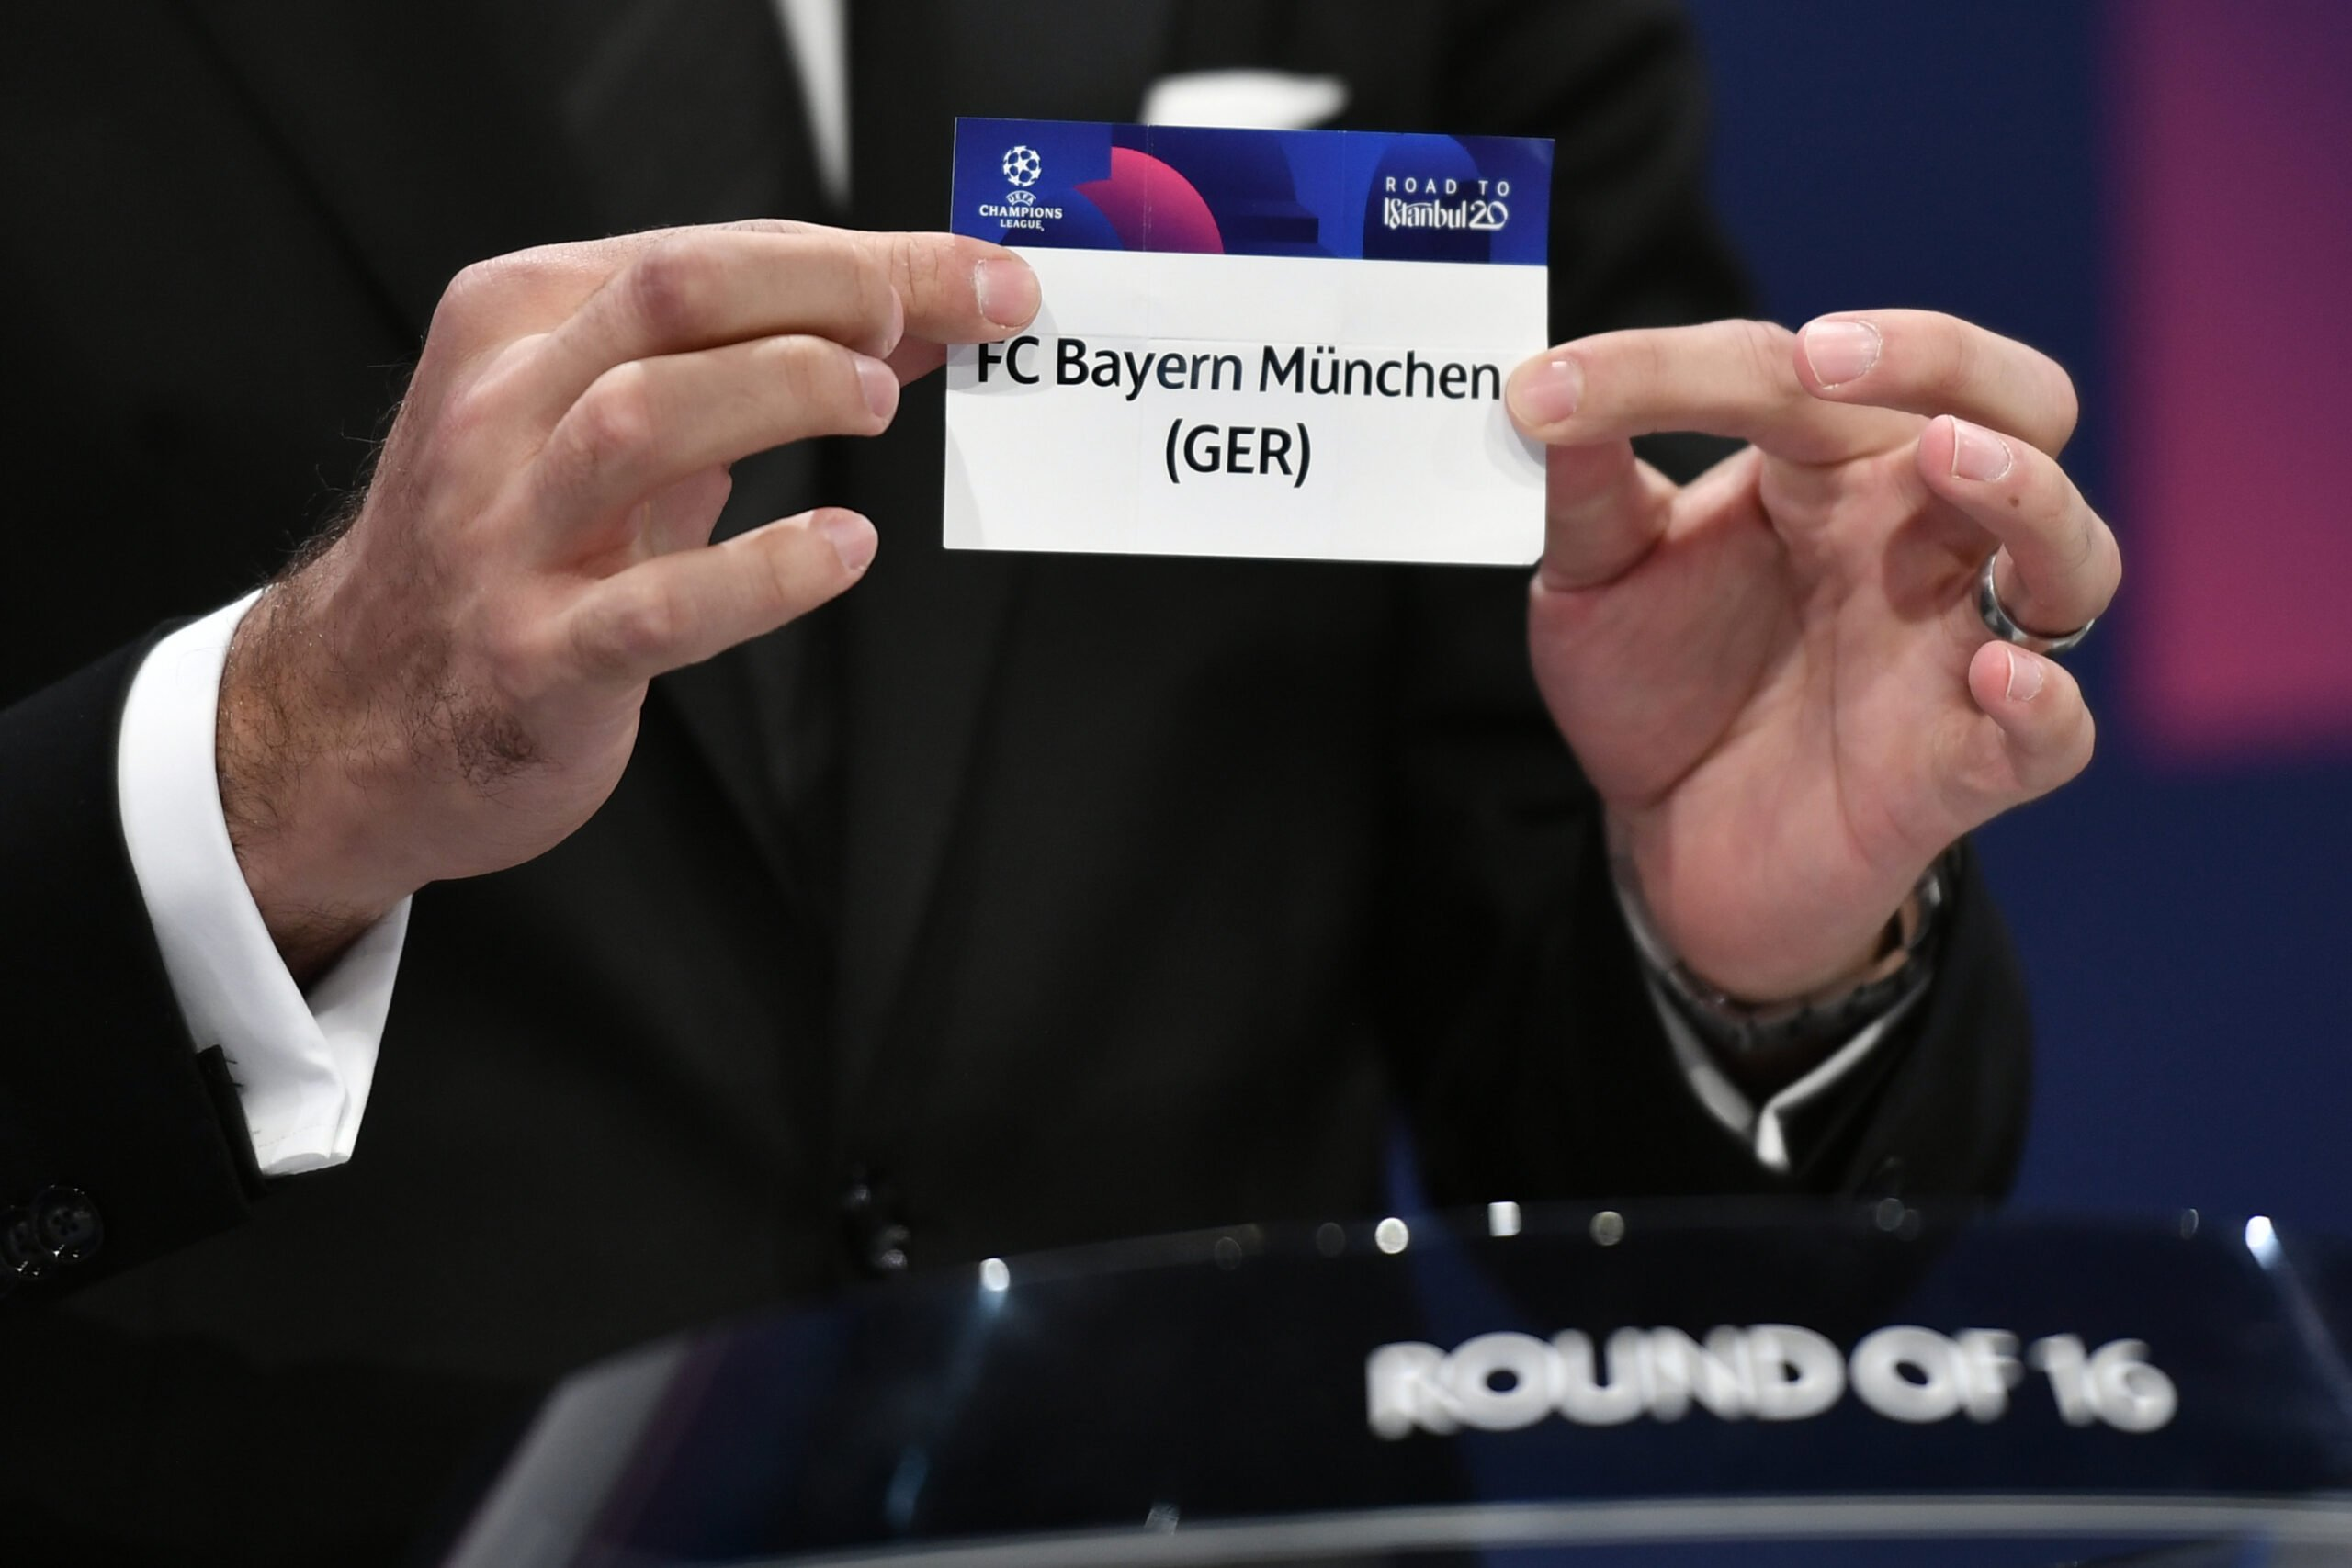 FC Bayern Champions League